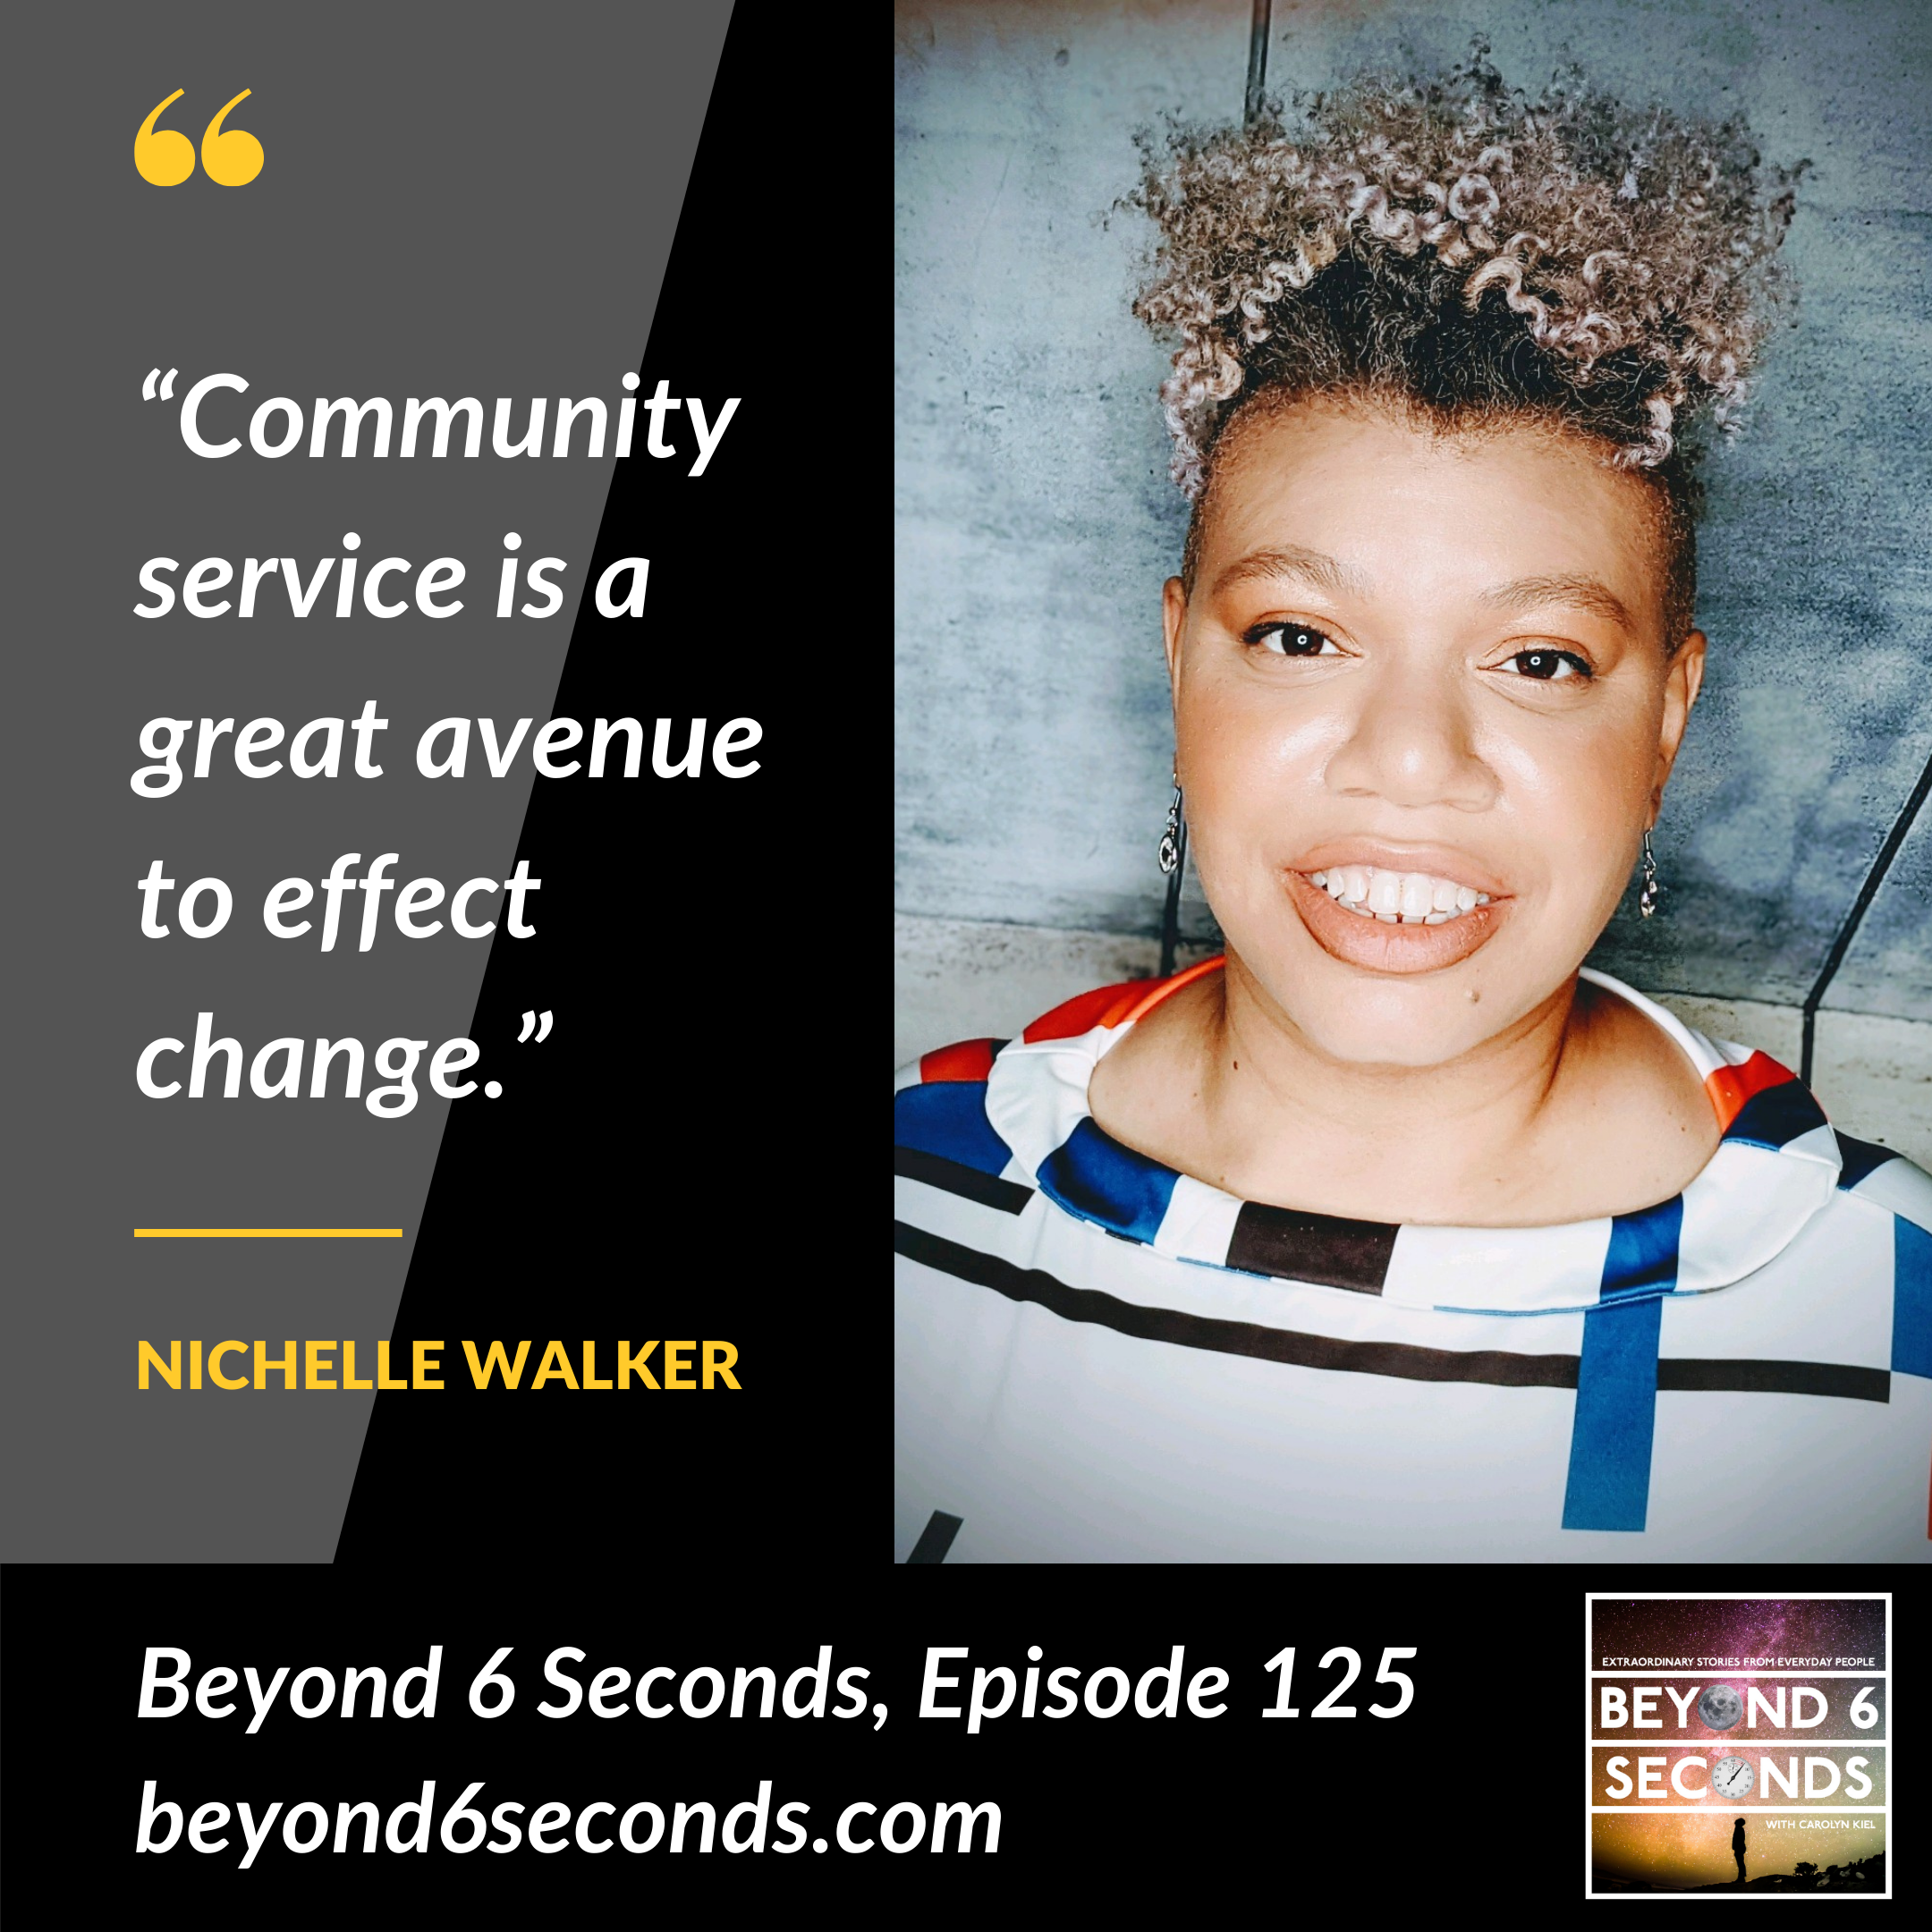 A quote from Nichelle's episode of Beyond 6 Seconds, next to her photo.